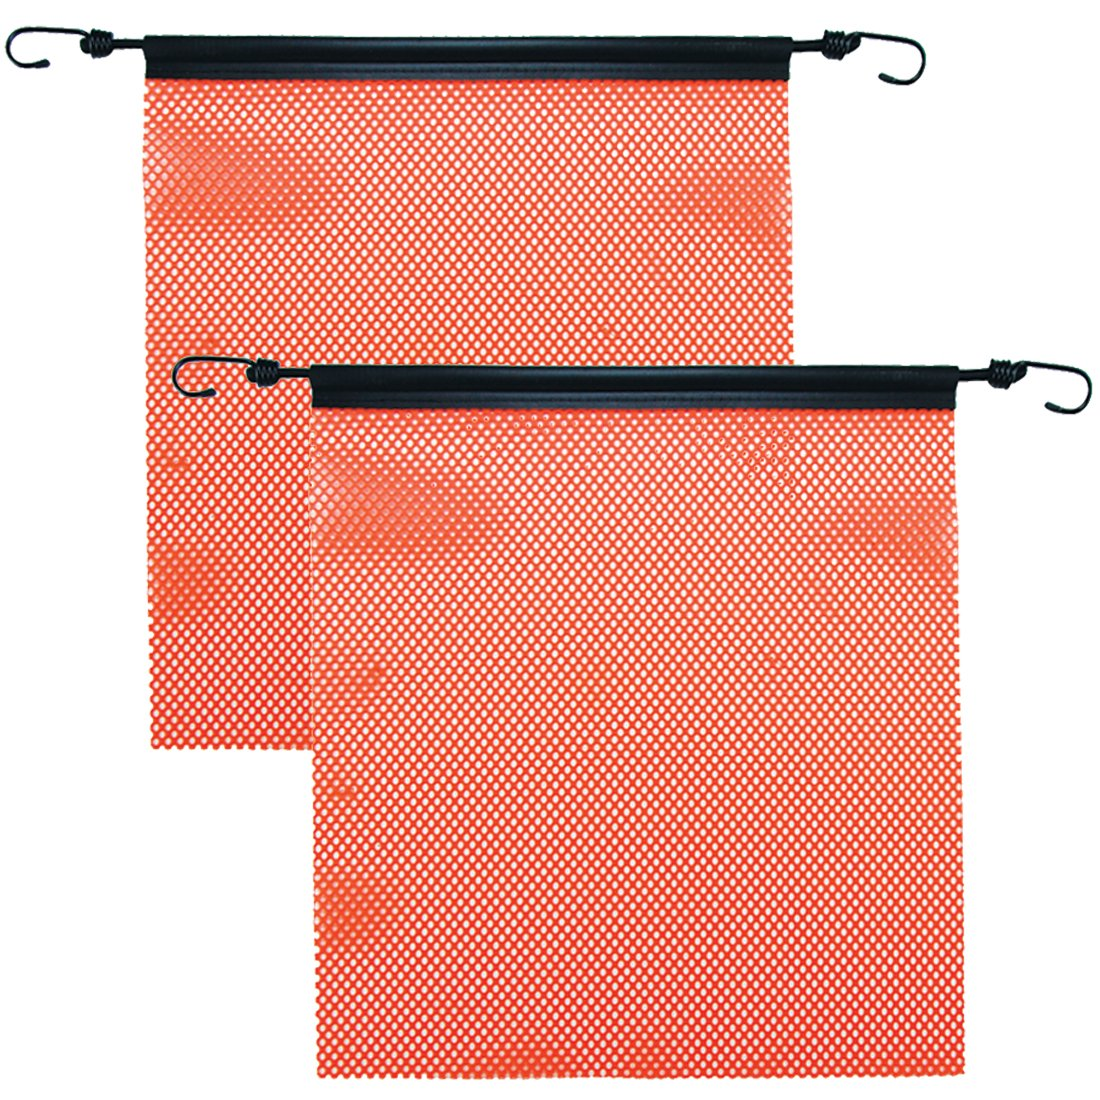 Vulcan Bright Orange Safety Flag With Stretch Cord For Wide And Oversize Load Marking (18'' x 18'' - Mesh Construction - Pack of 2)